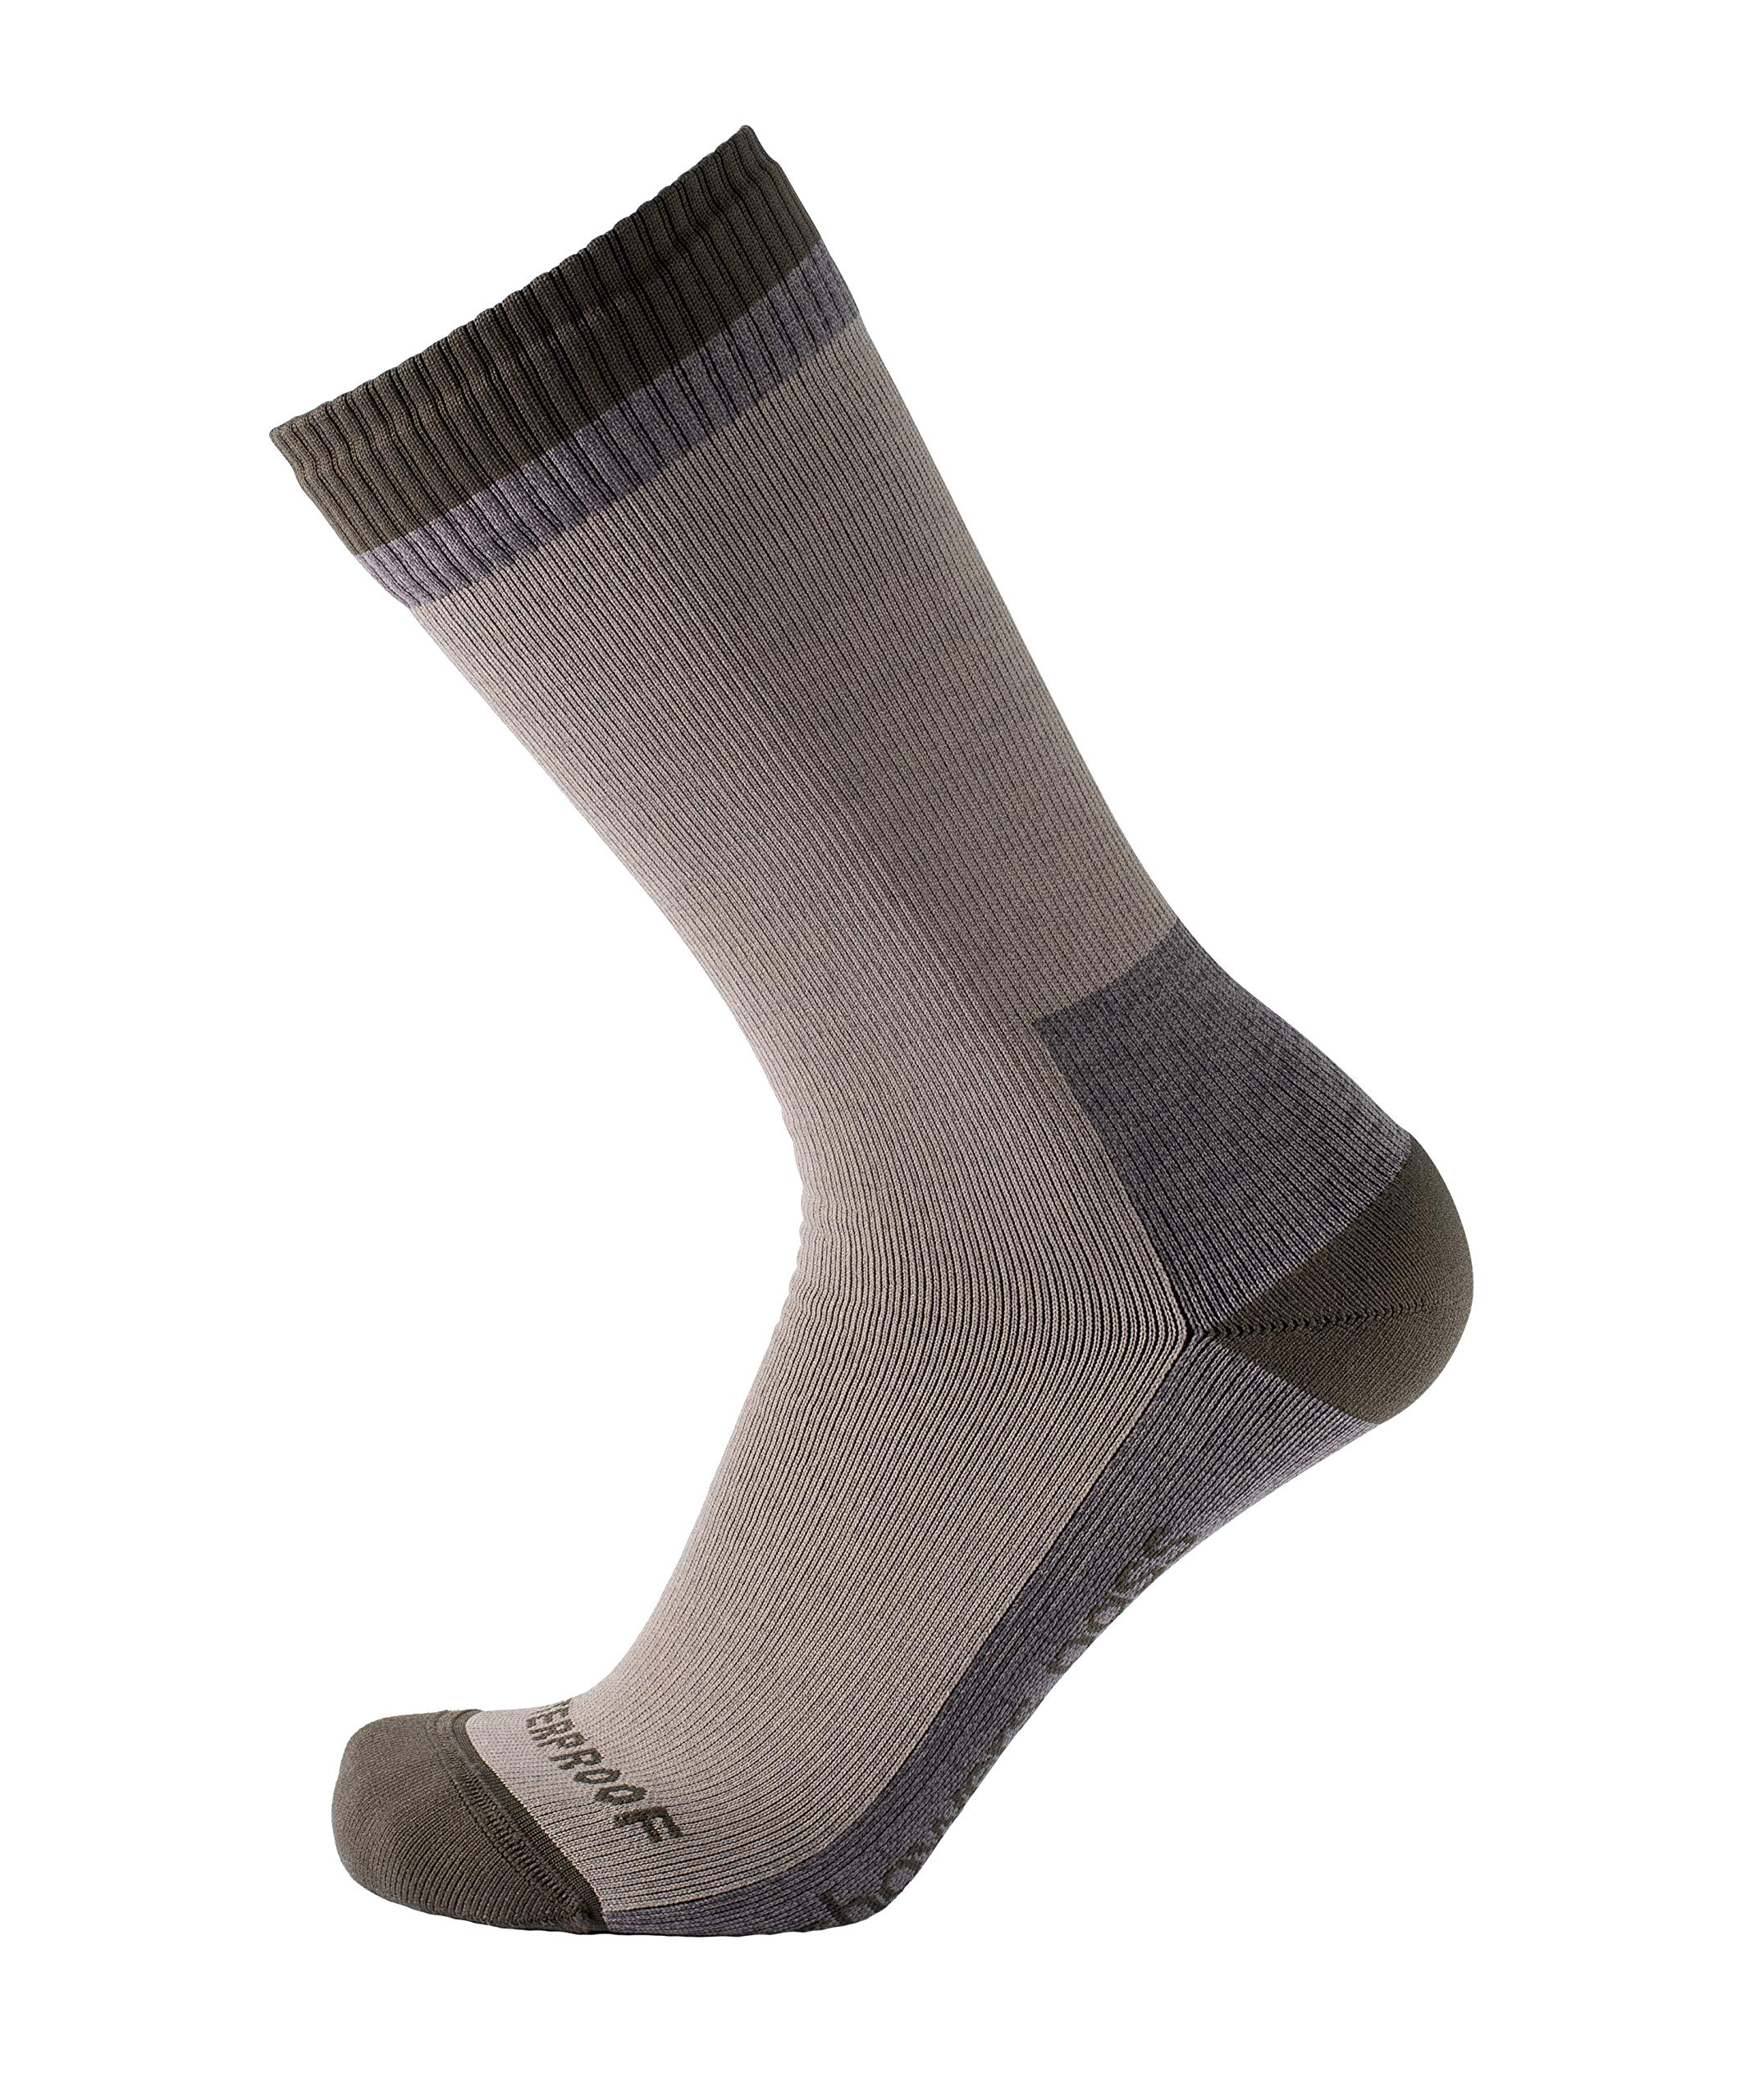 Showers Pass 100% Waterproof Breathable Wool Lined Multisport Unisex Socks - Mountain (STNE - MDL) by Showers Pass